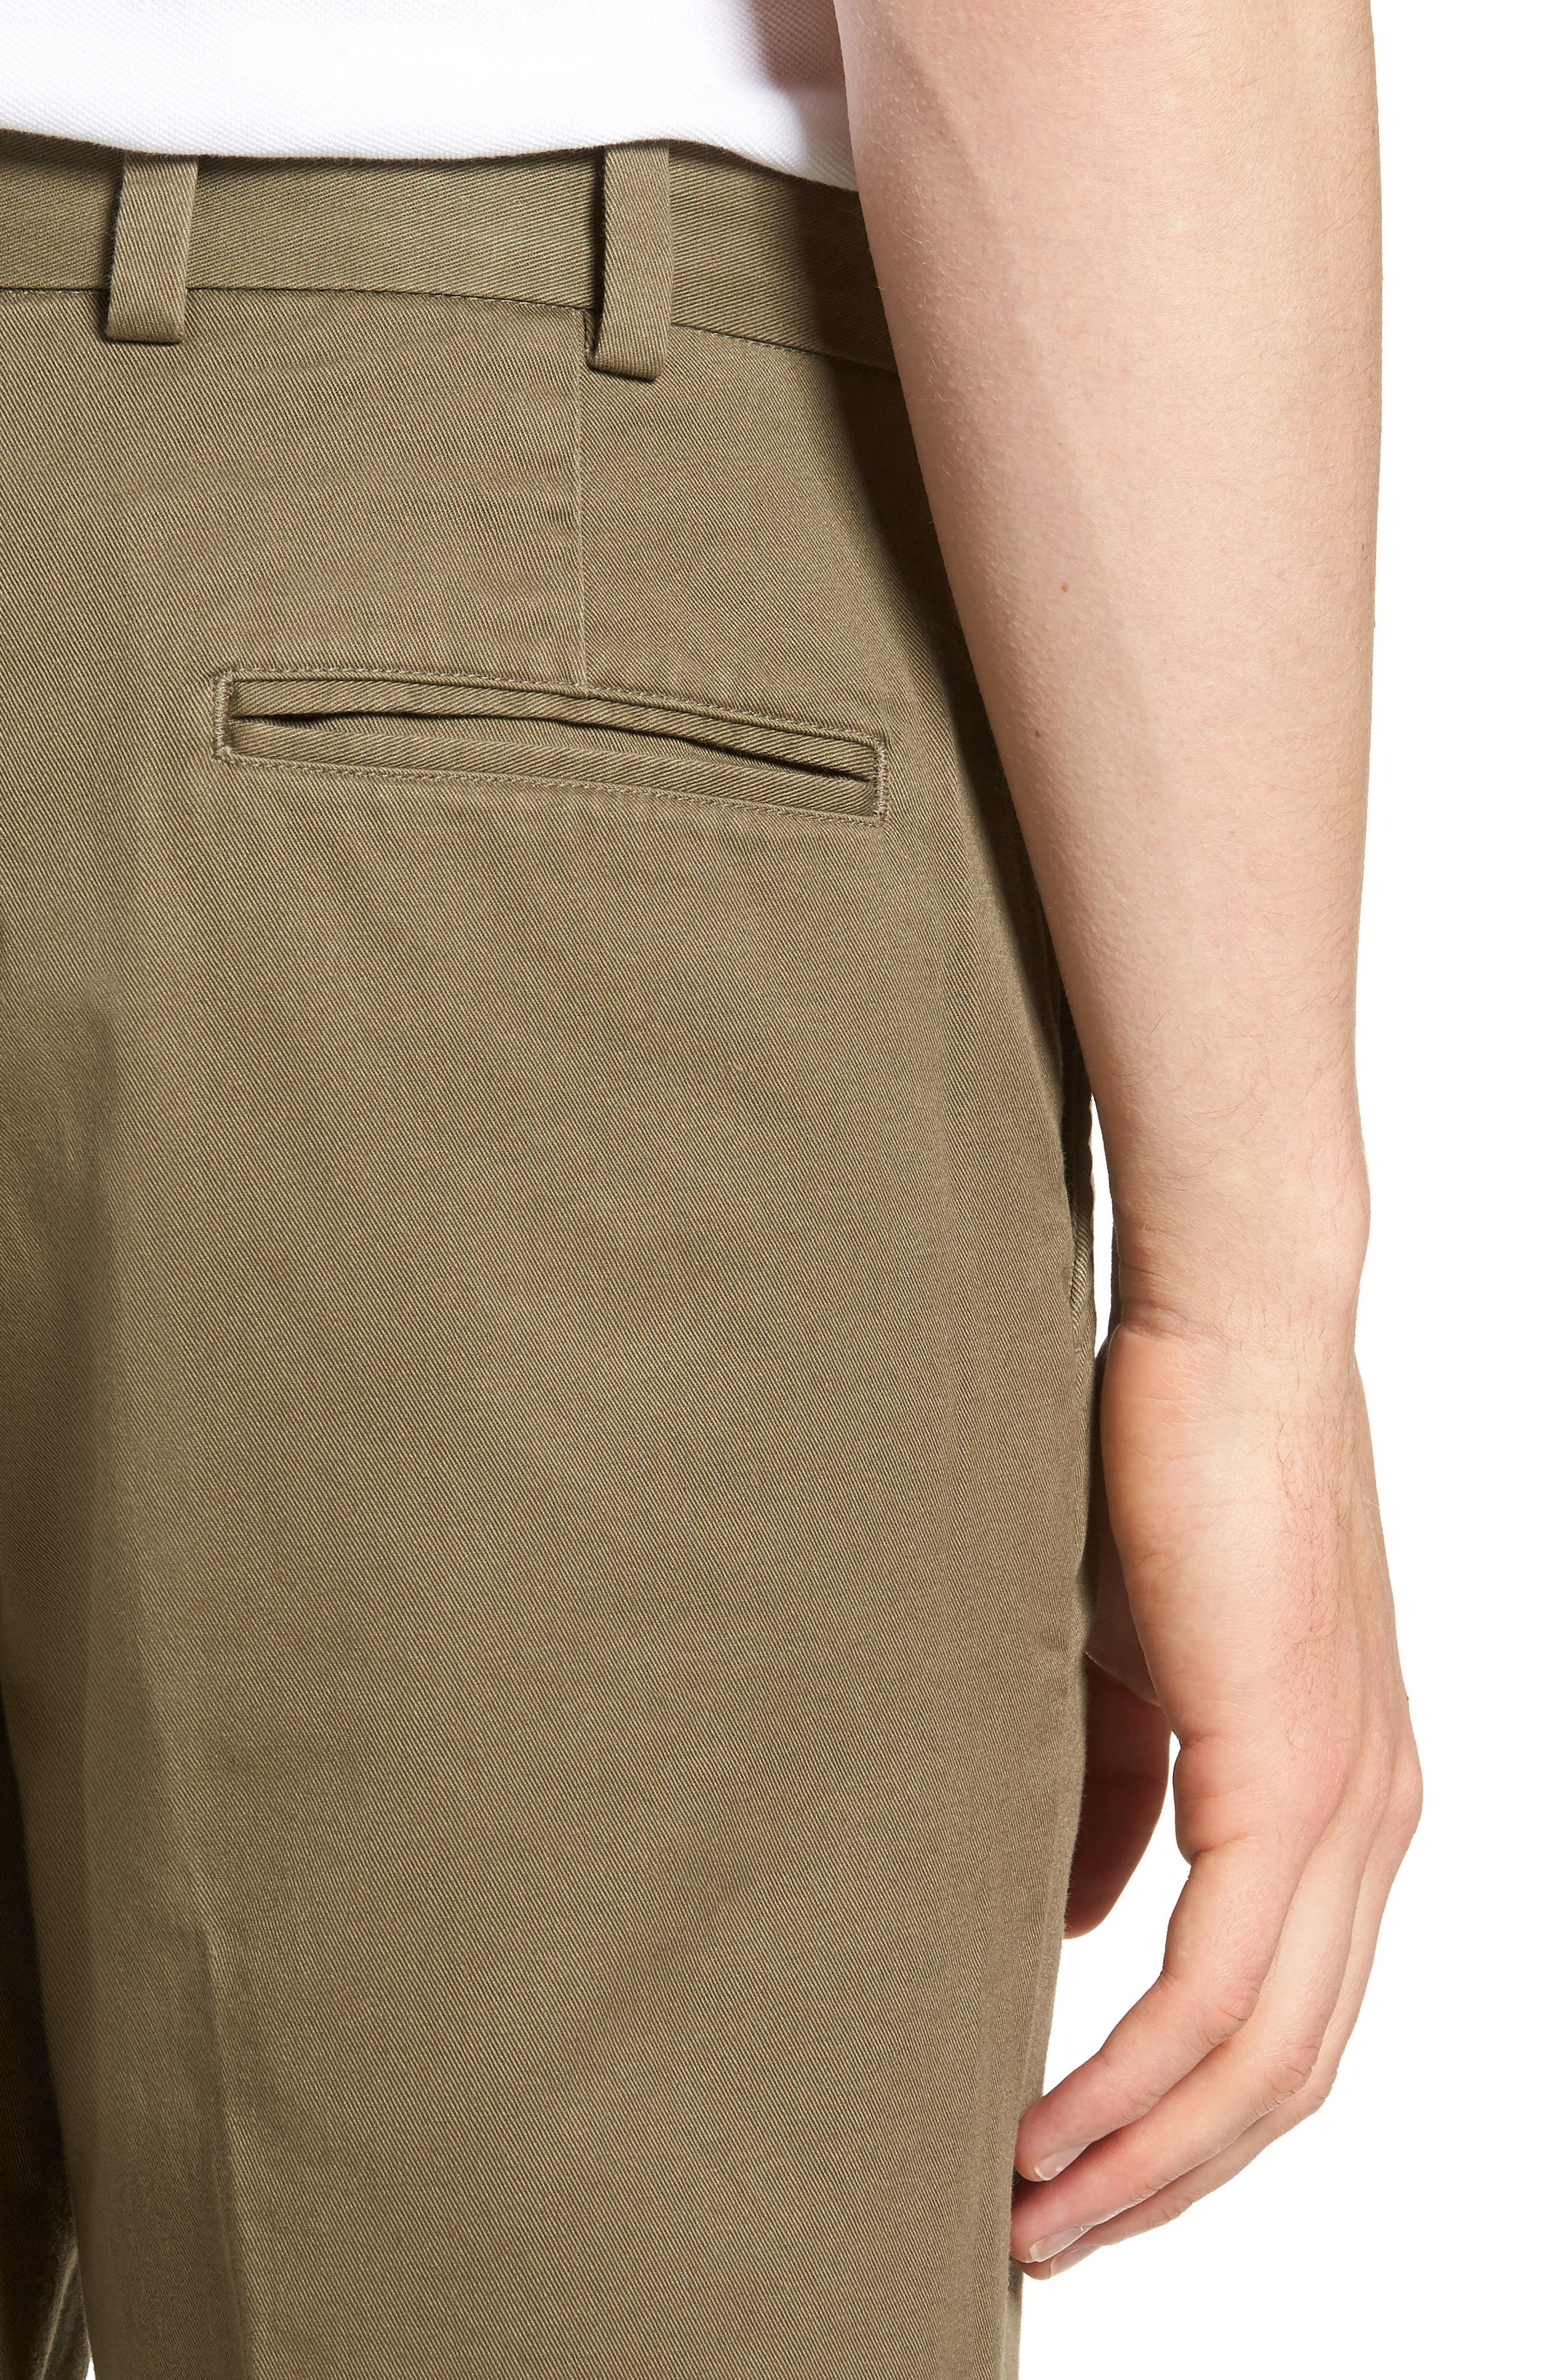 M3 Straight Fit Flat Front Vintage Twill Pants,                             Alternate thumbnail 4, color,                             Olive